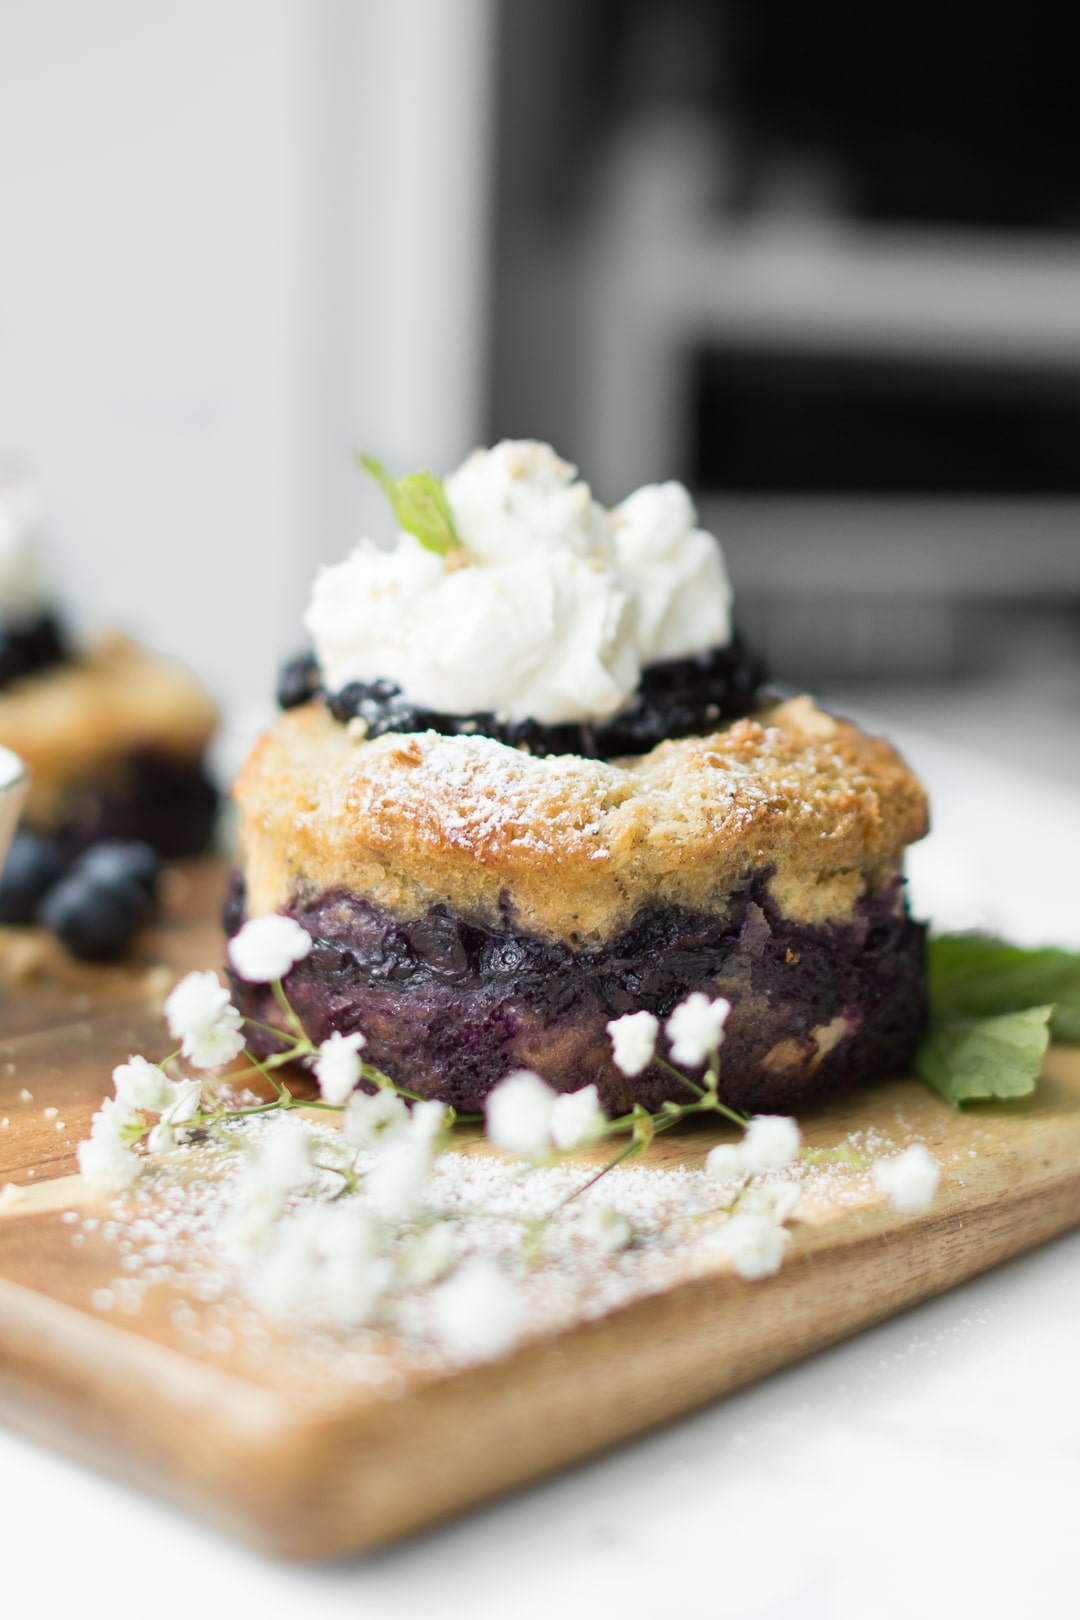 Blueberry French Toast Cake on a wooden board with baby's breath